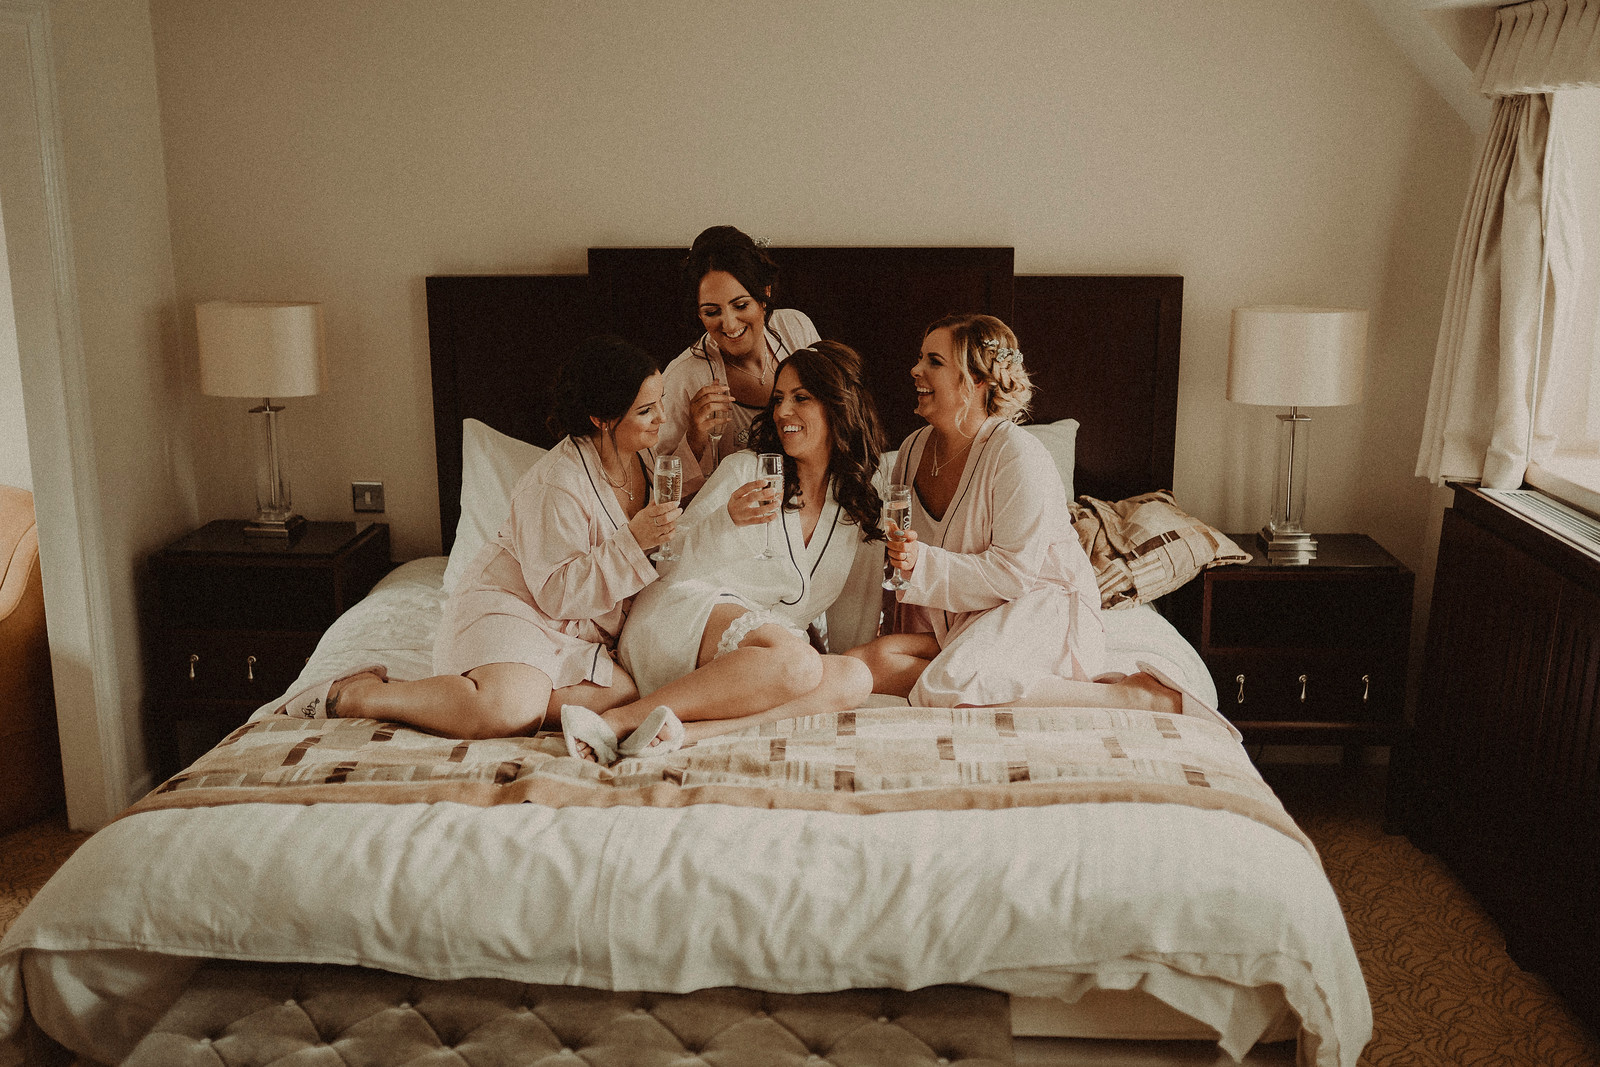 Bride and bridesmaids getting ready wedding photo